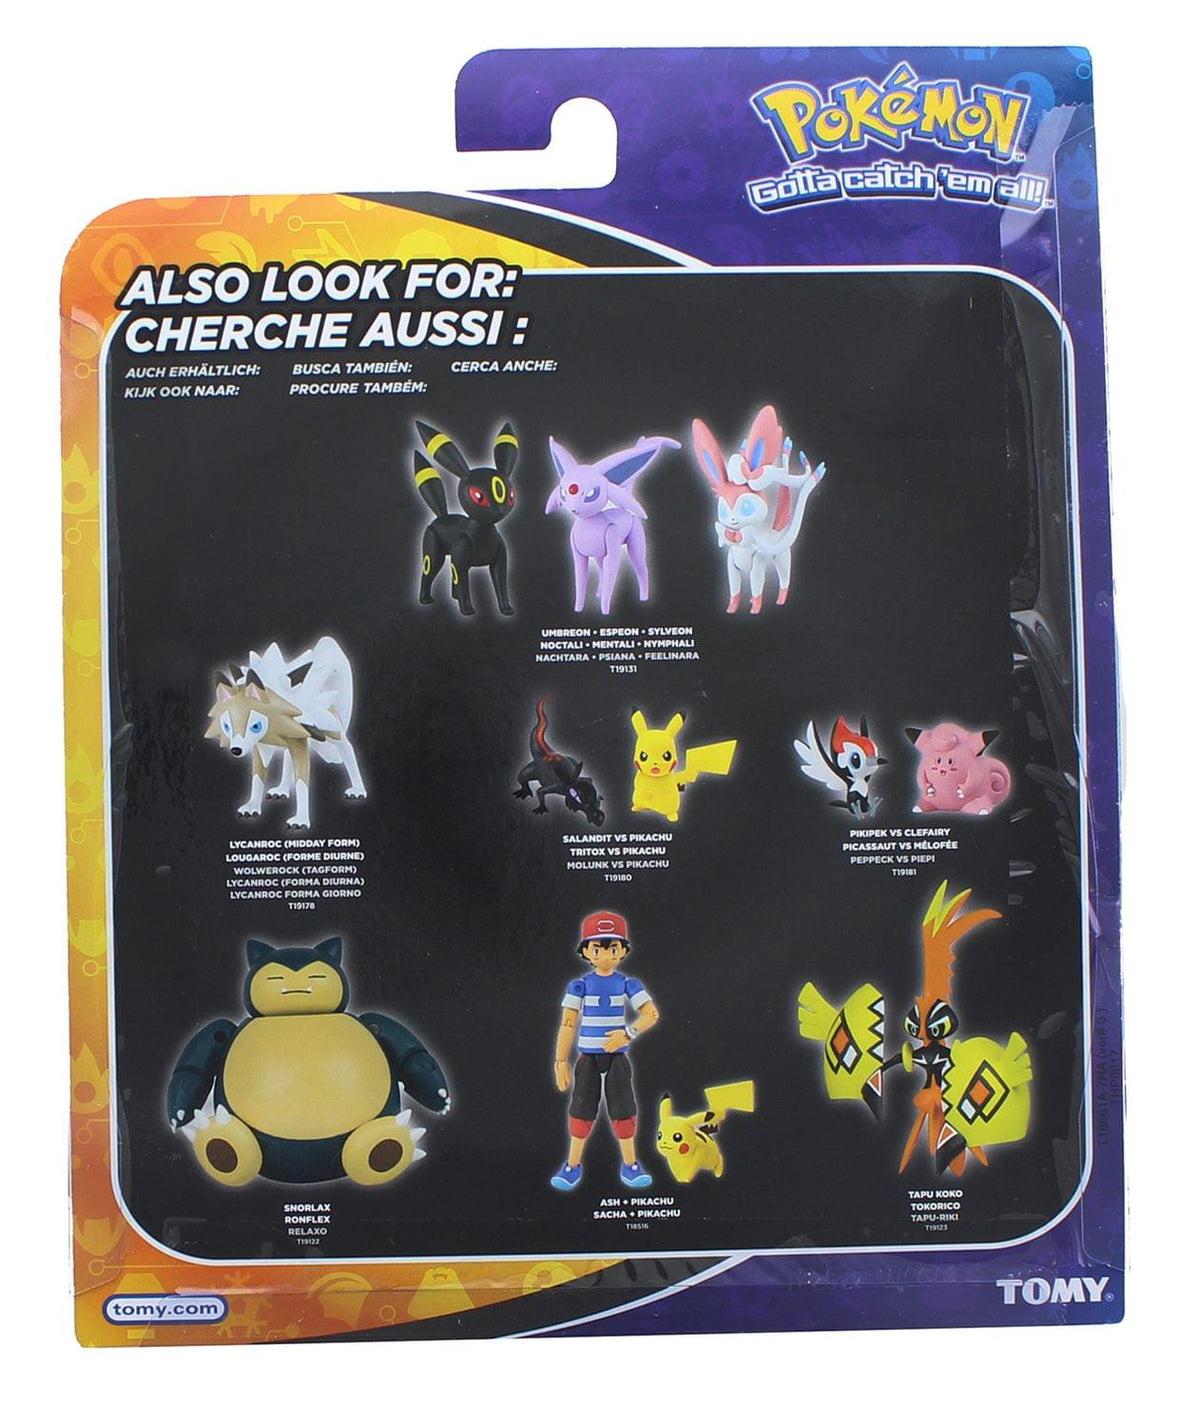 Tagform TOMY T19178 Pokemon Actionfigur Wolwerock